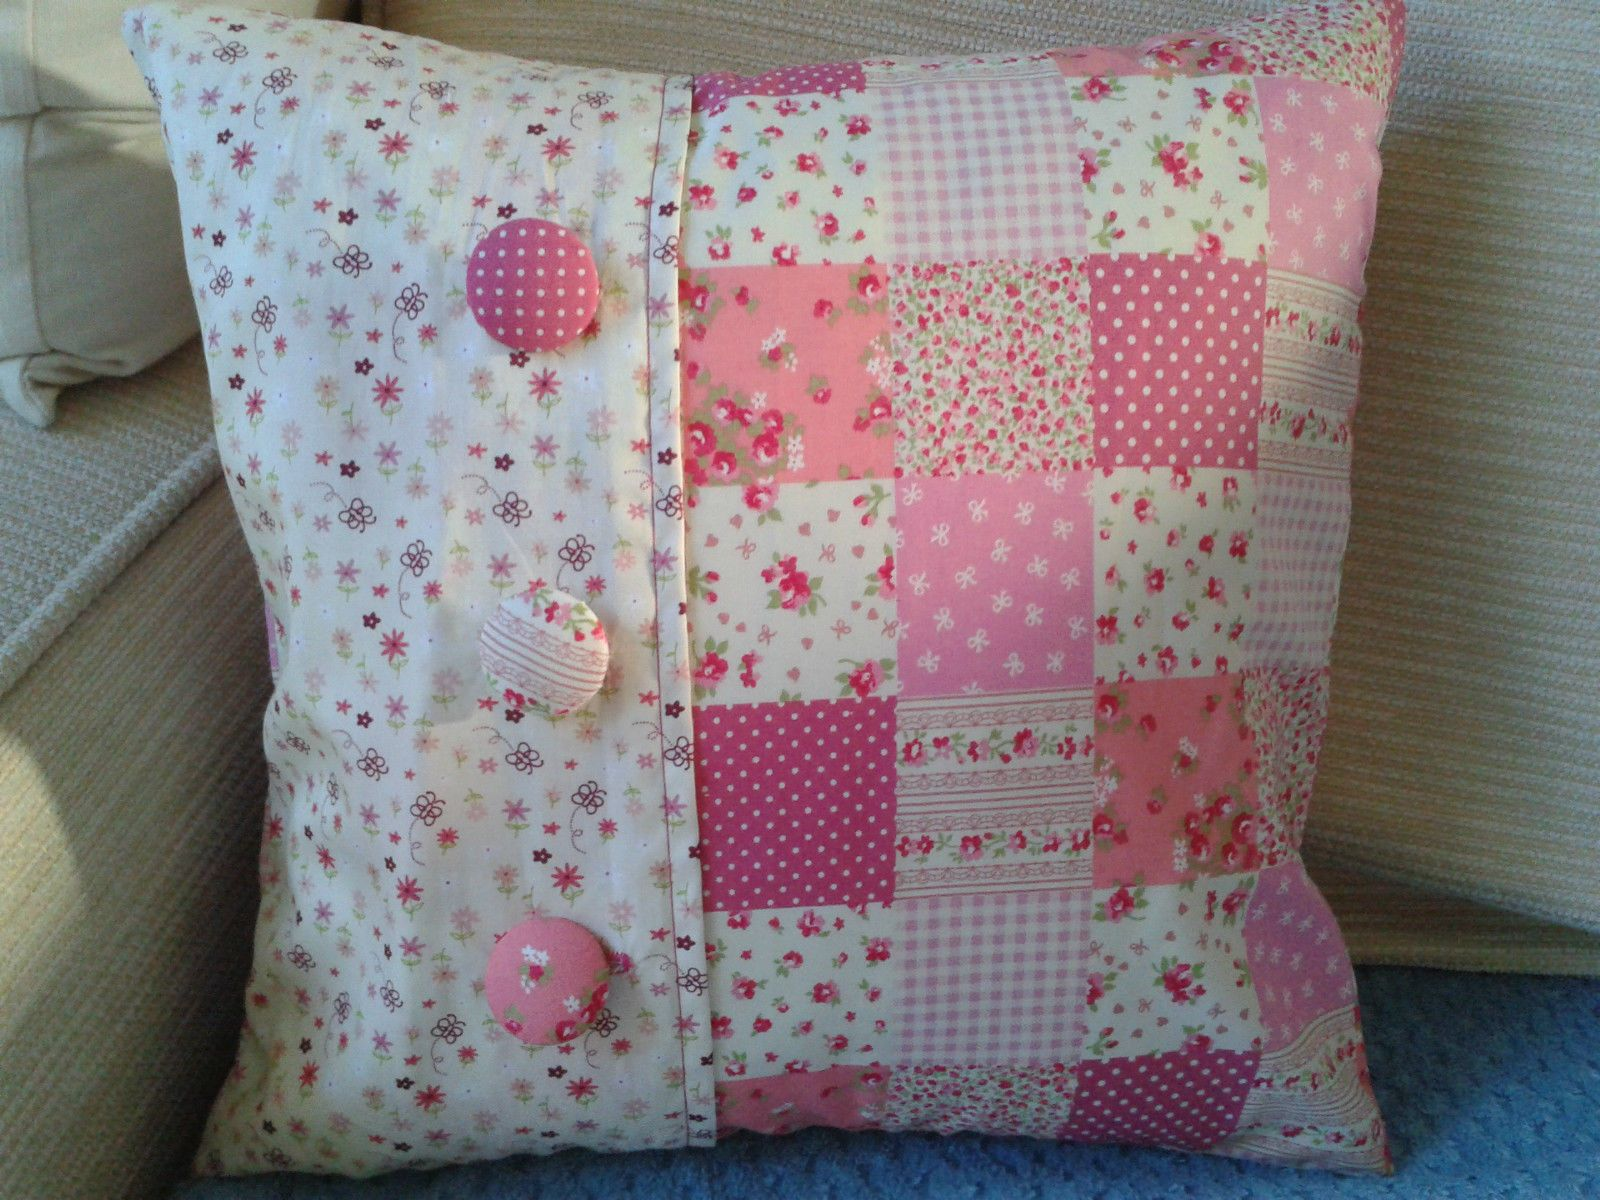 Handmade pink ditsy floral patchwork shabby chic cushion cover 14